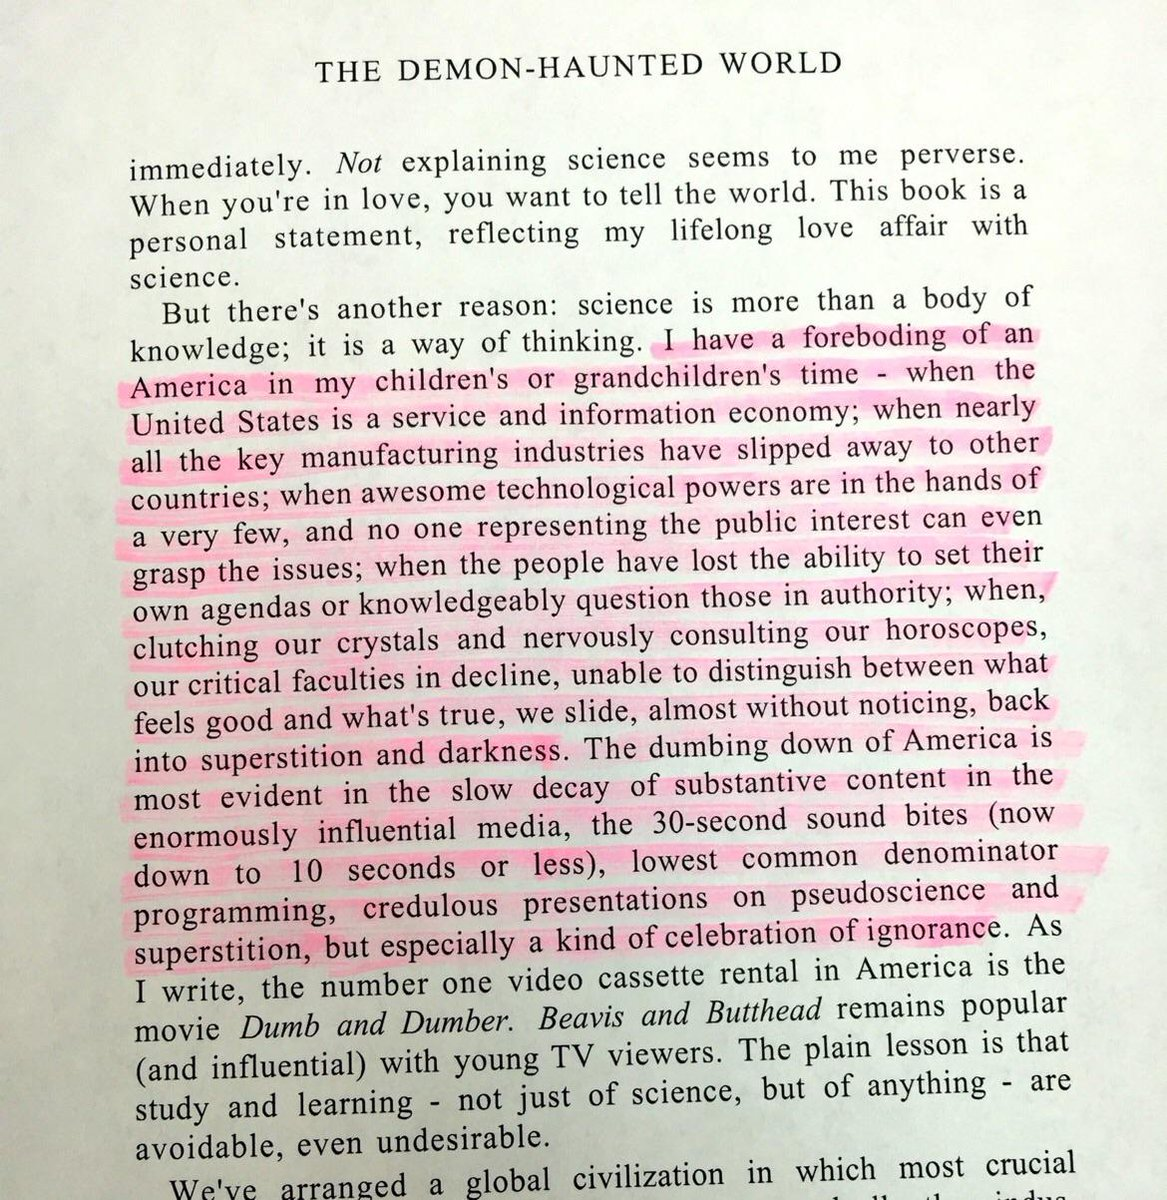 Carl Sagan was eerily accurate on this prediction for the future all the way back in 1996. 100% on point WDYT? https://t.co/7NdE4d3P8y